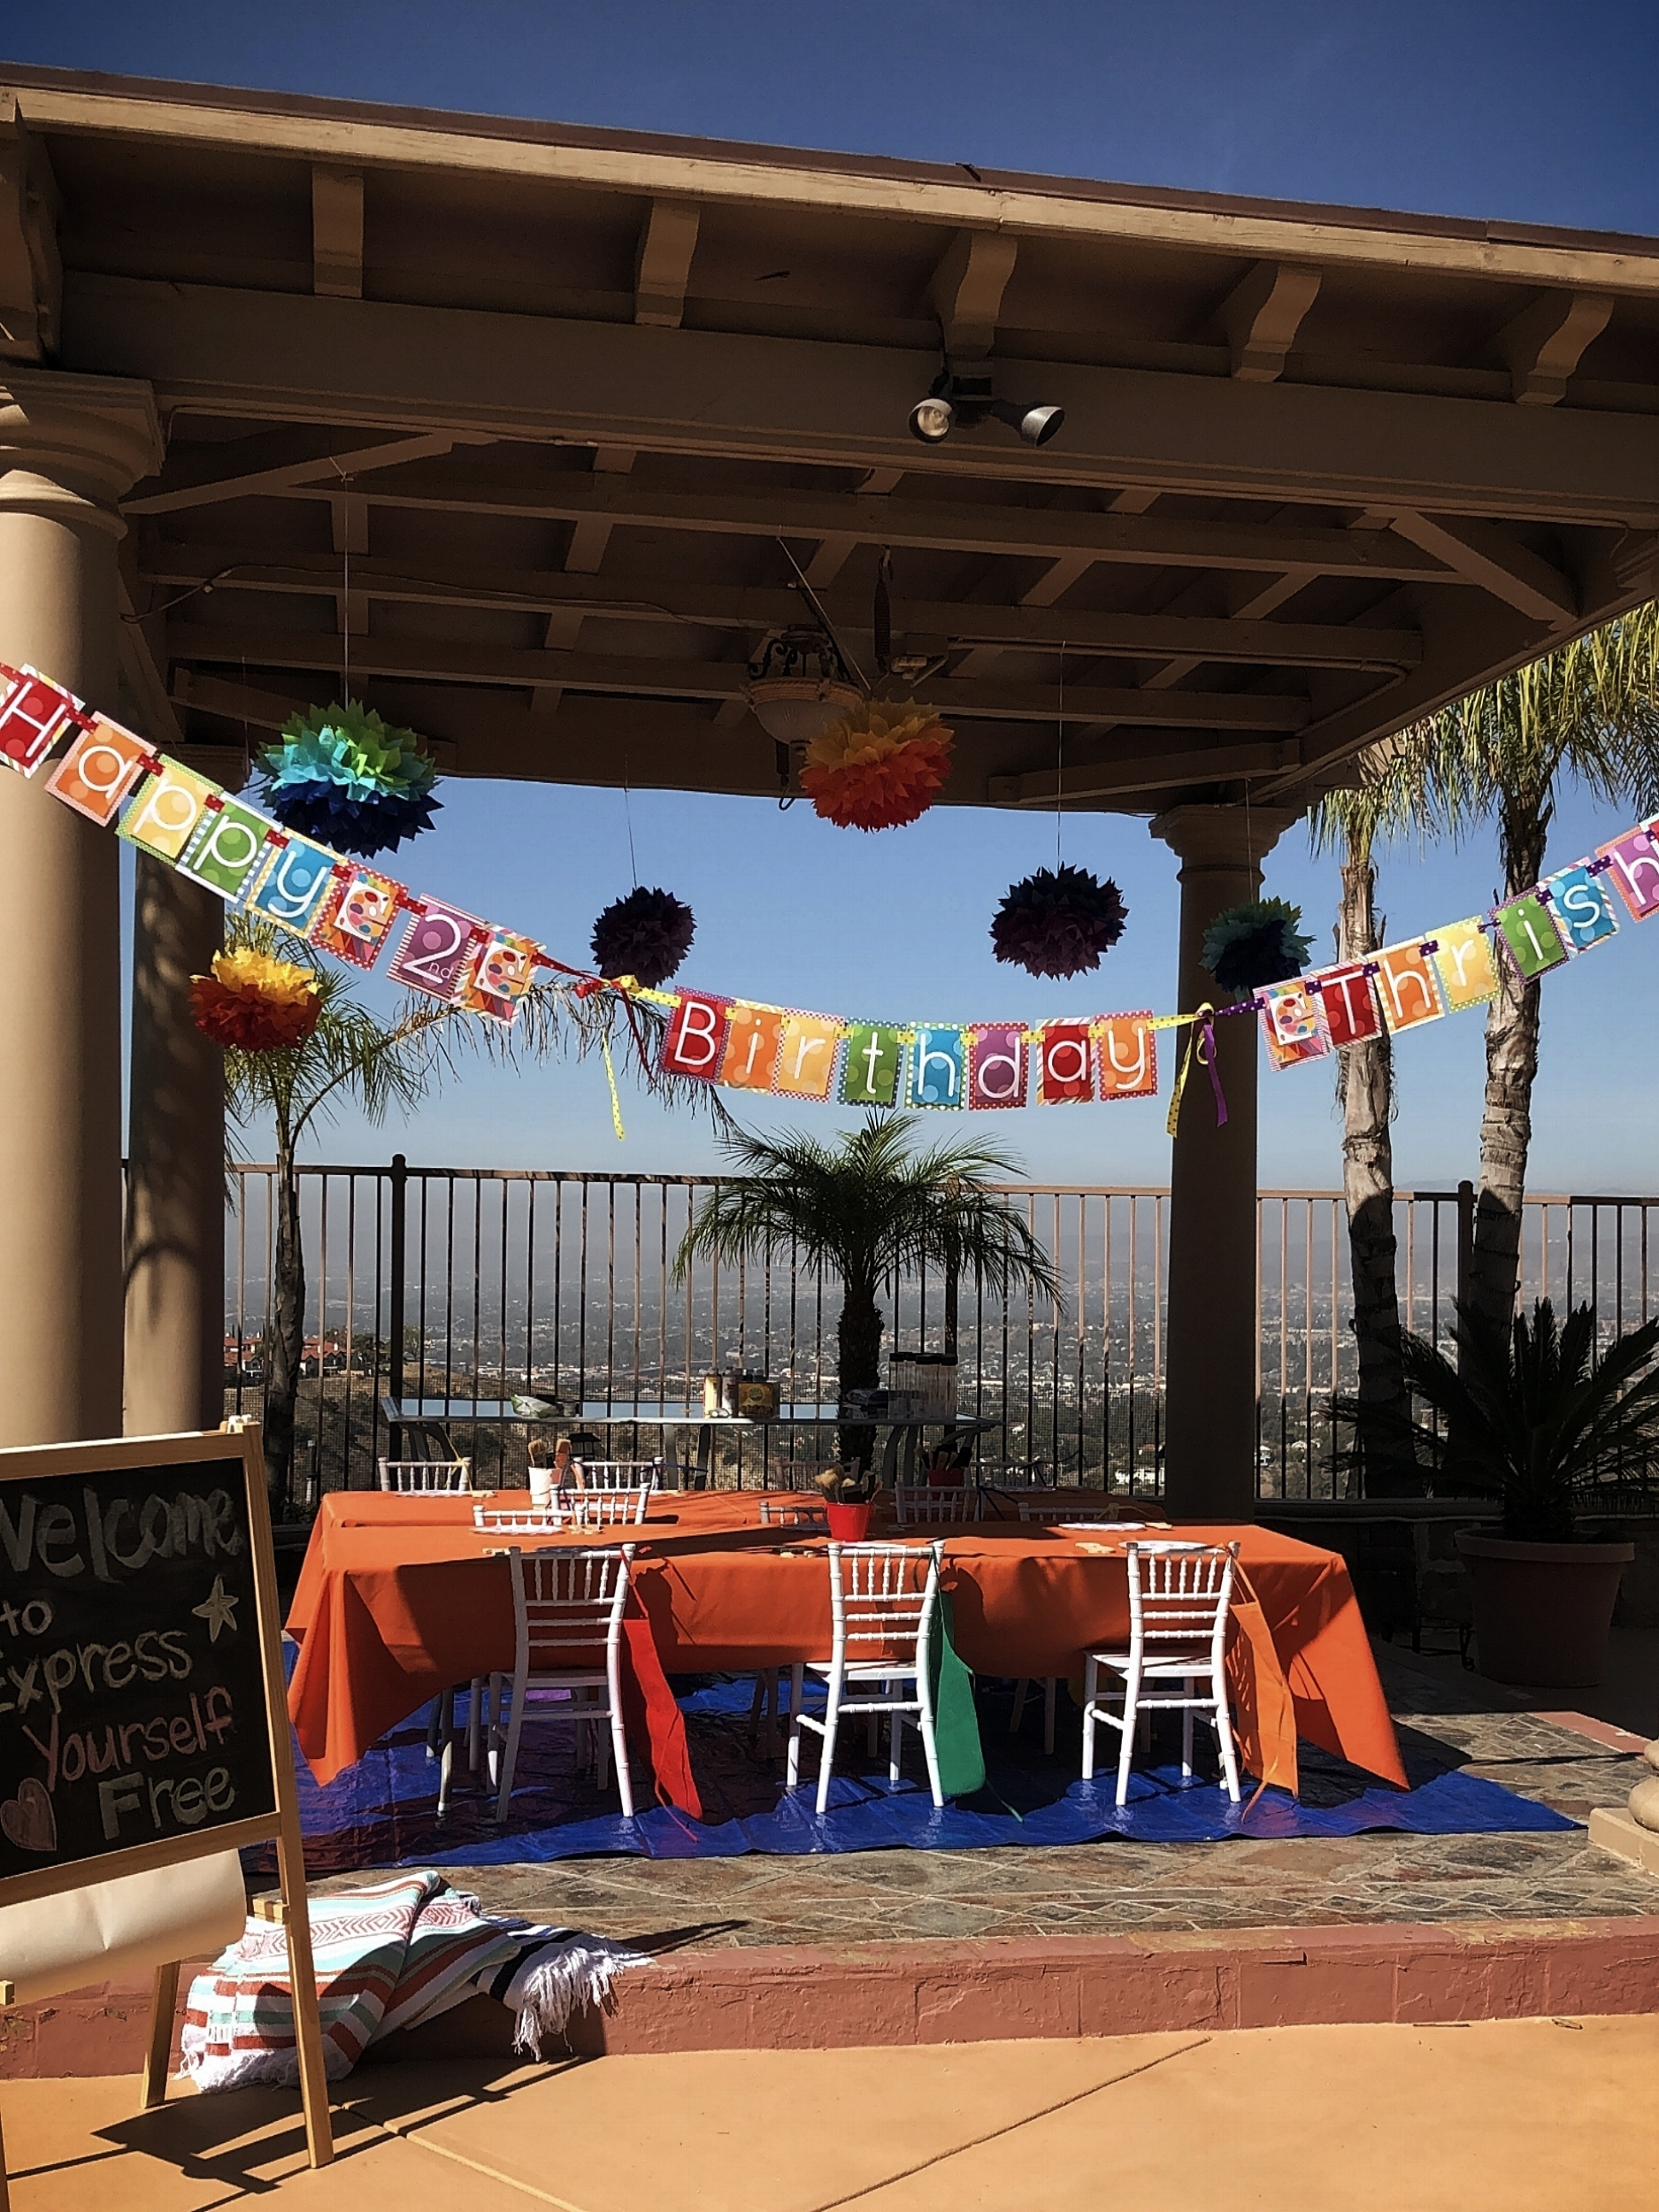 HaPPY 2nd Birthday Party! - October 27th, 2018